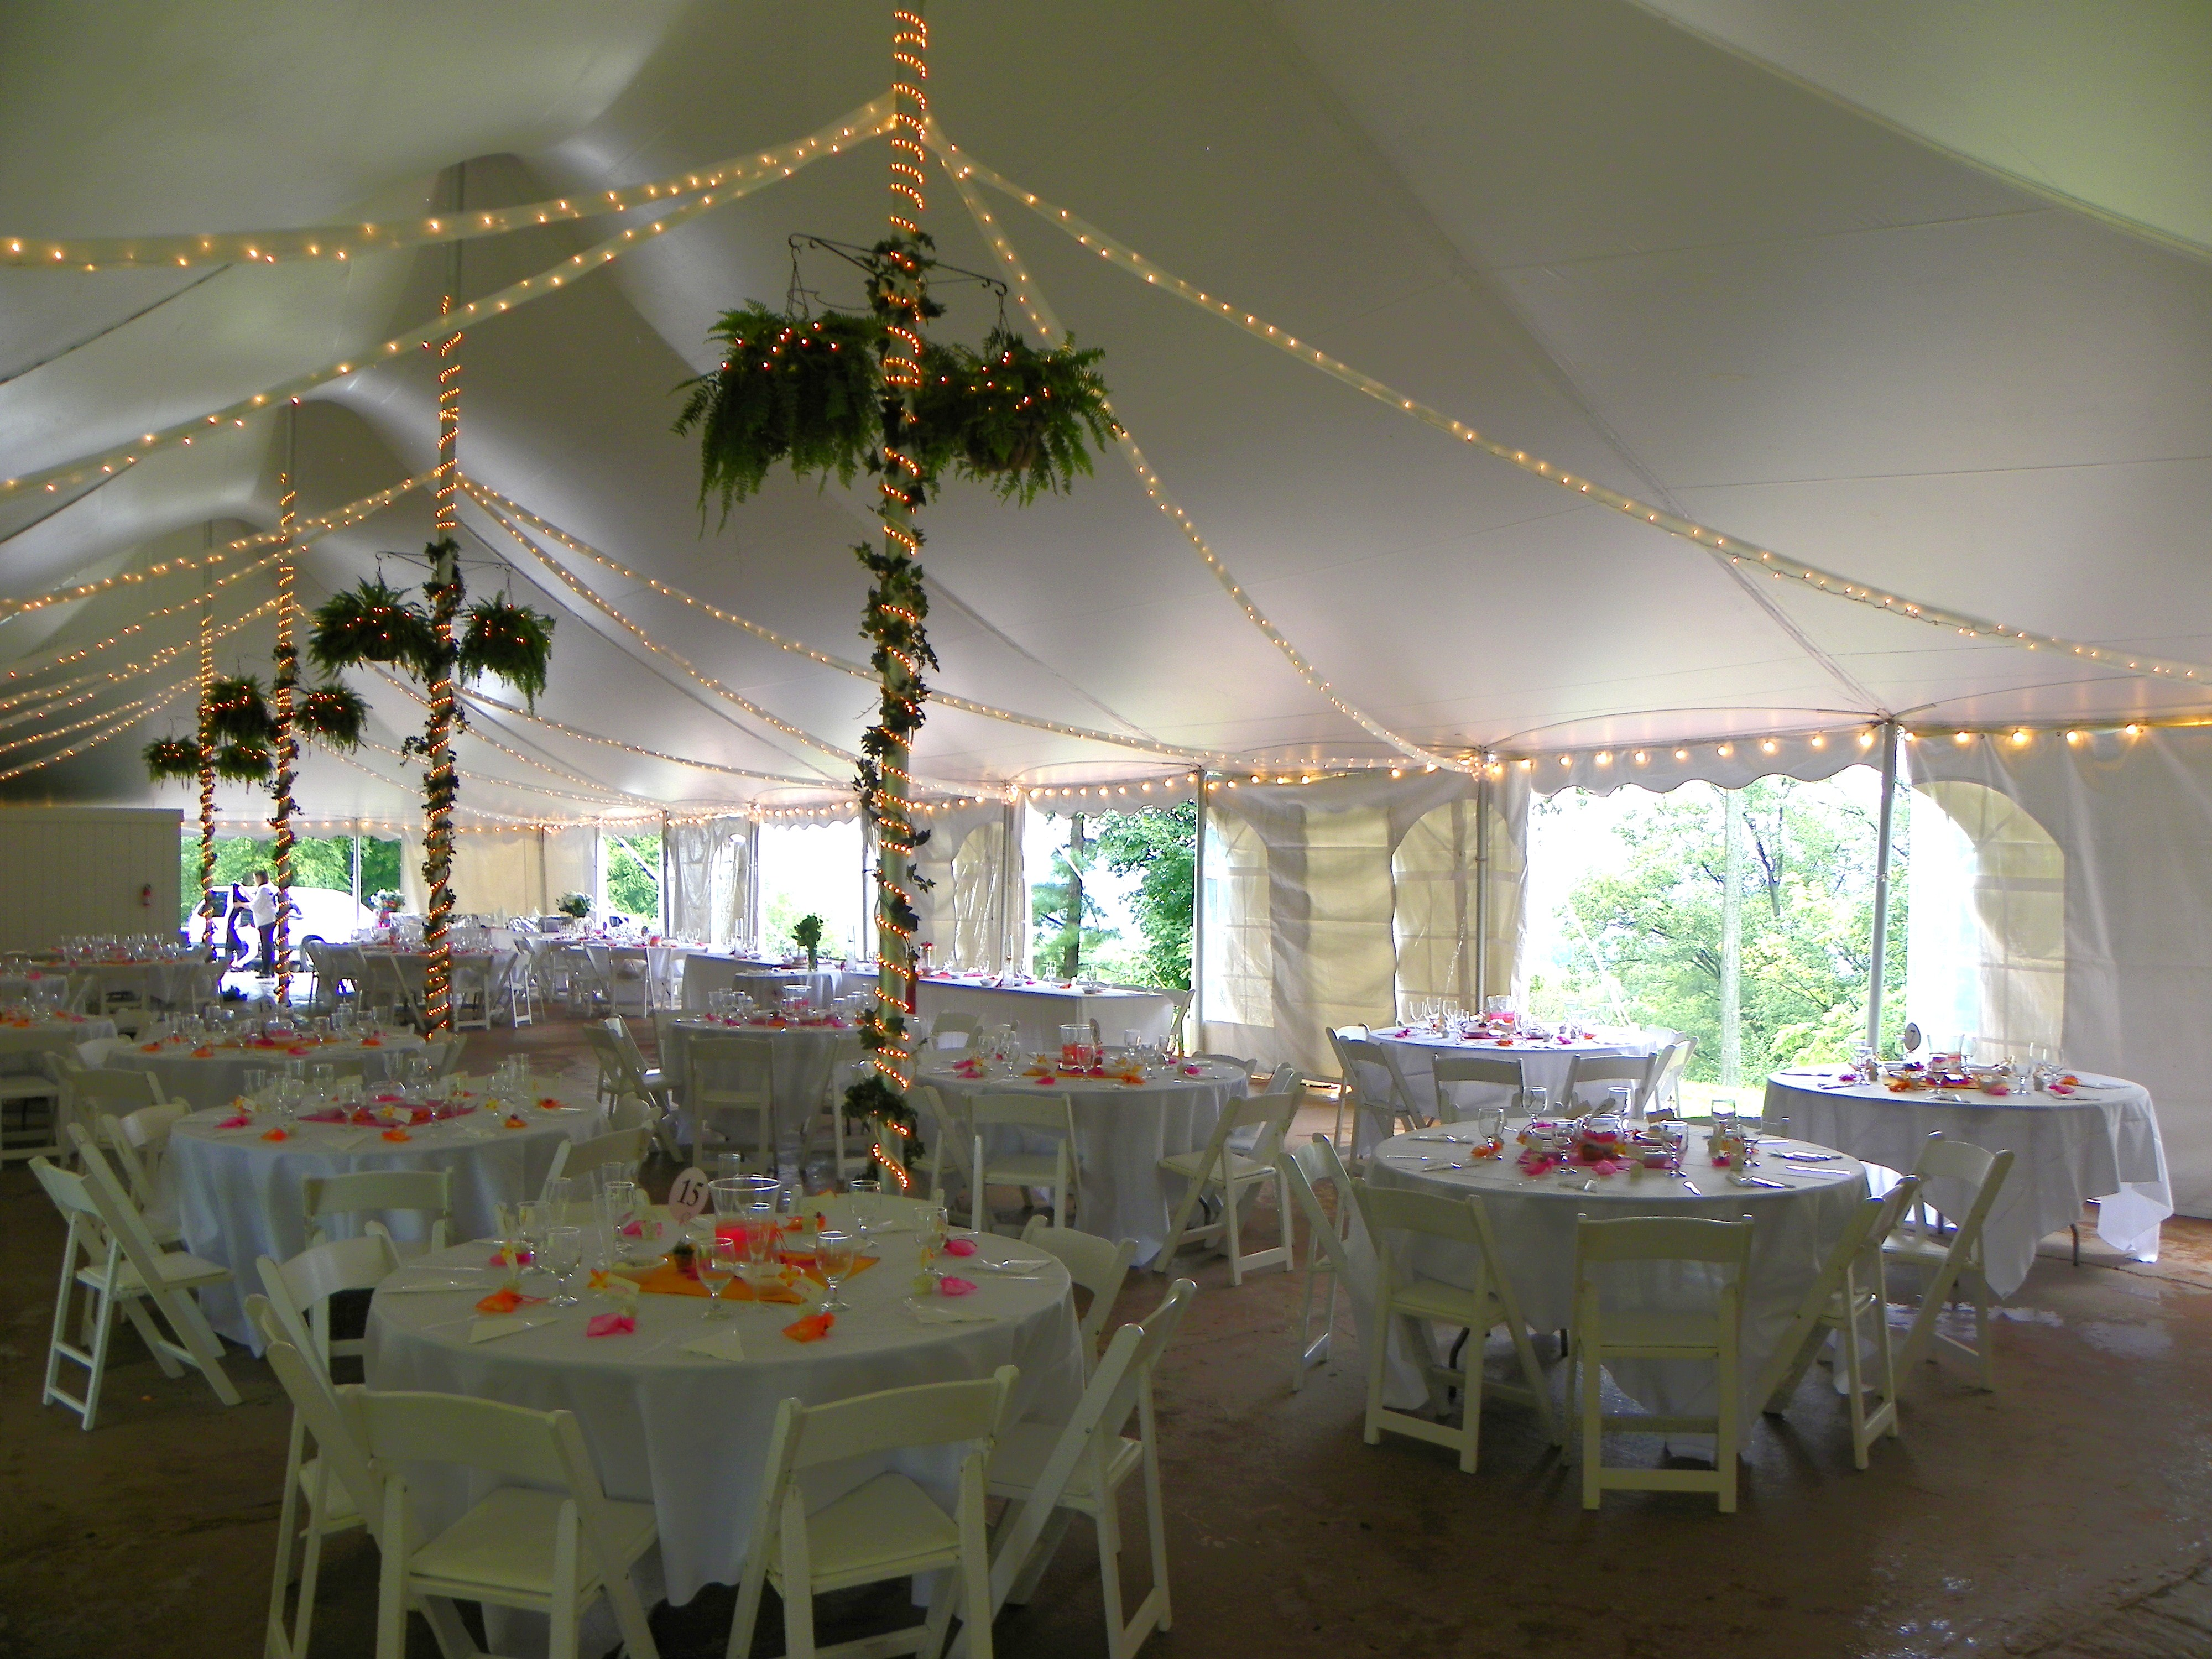 ChristinasCatering.com-Unique Venues